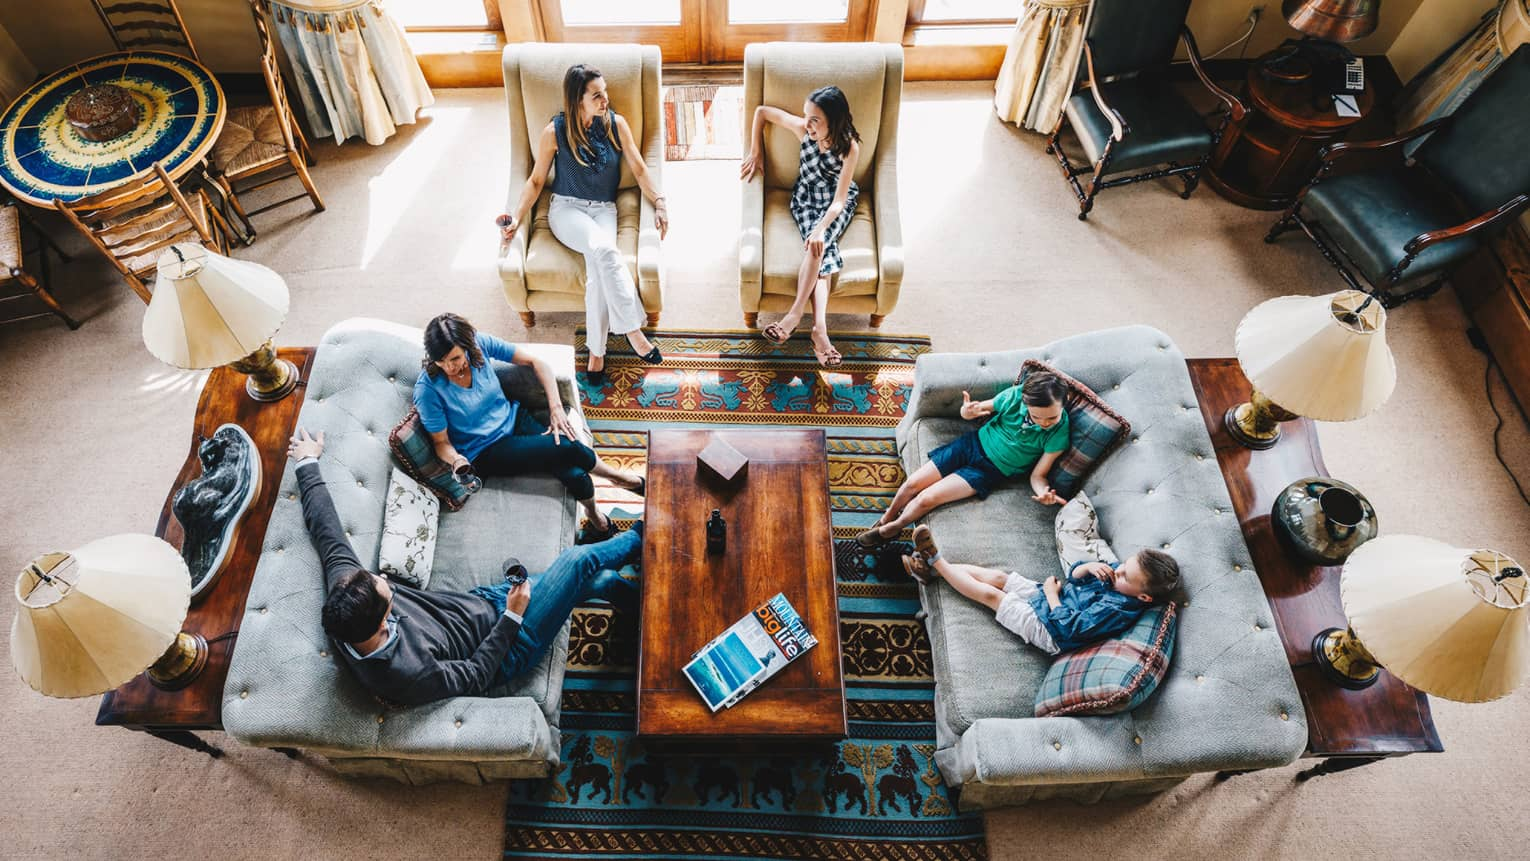 Aerial view of guests talking and relaxing in the living room of a residence